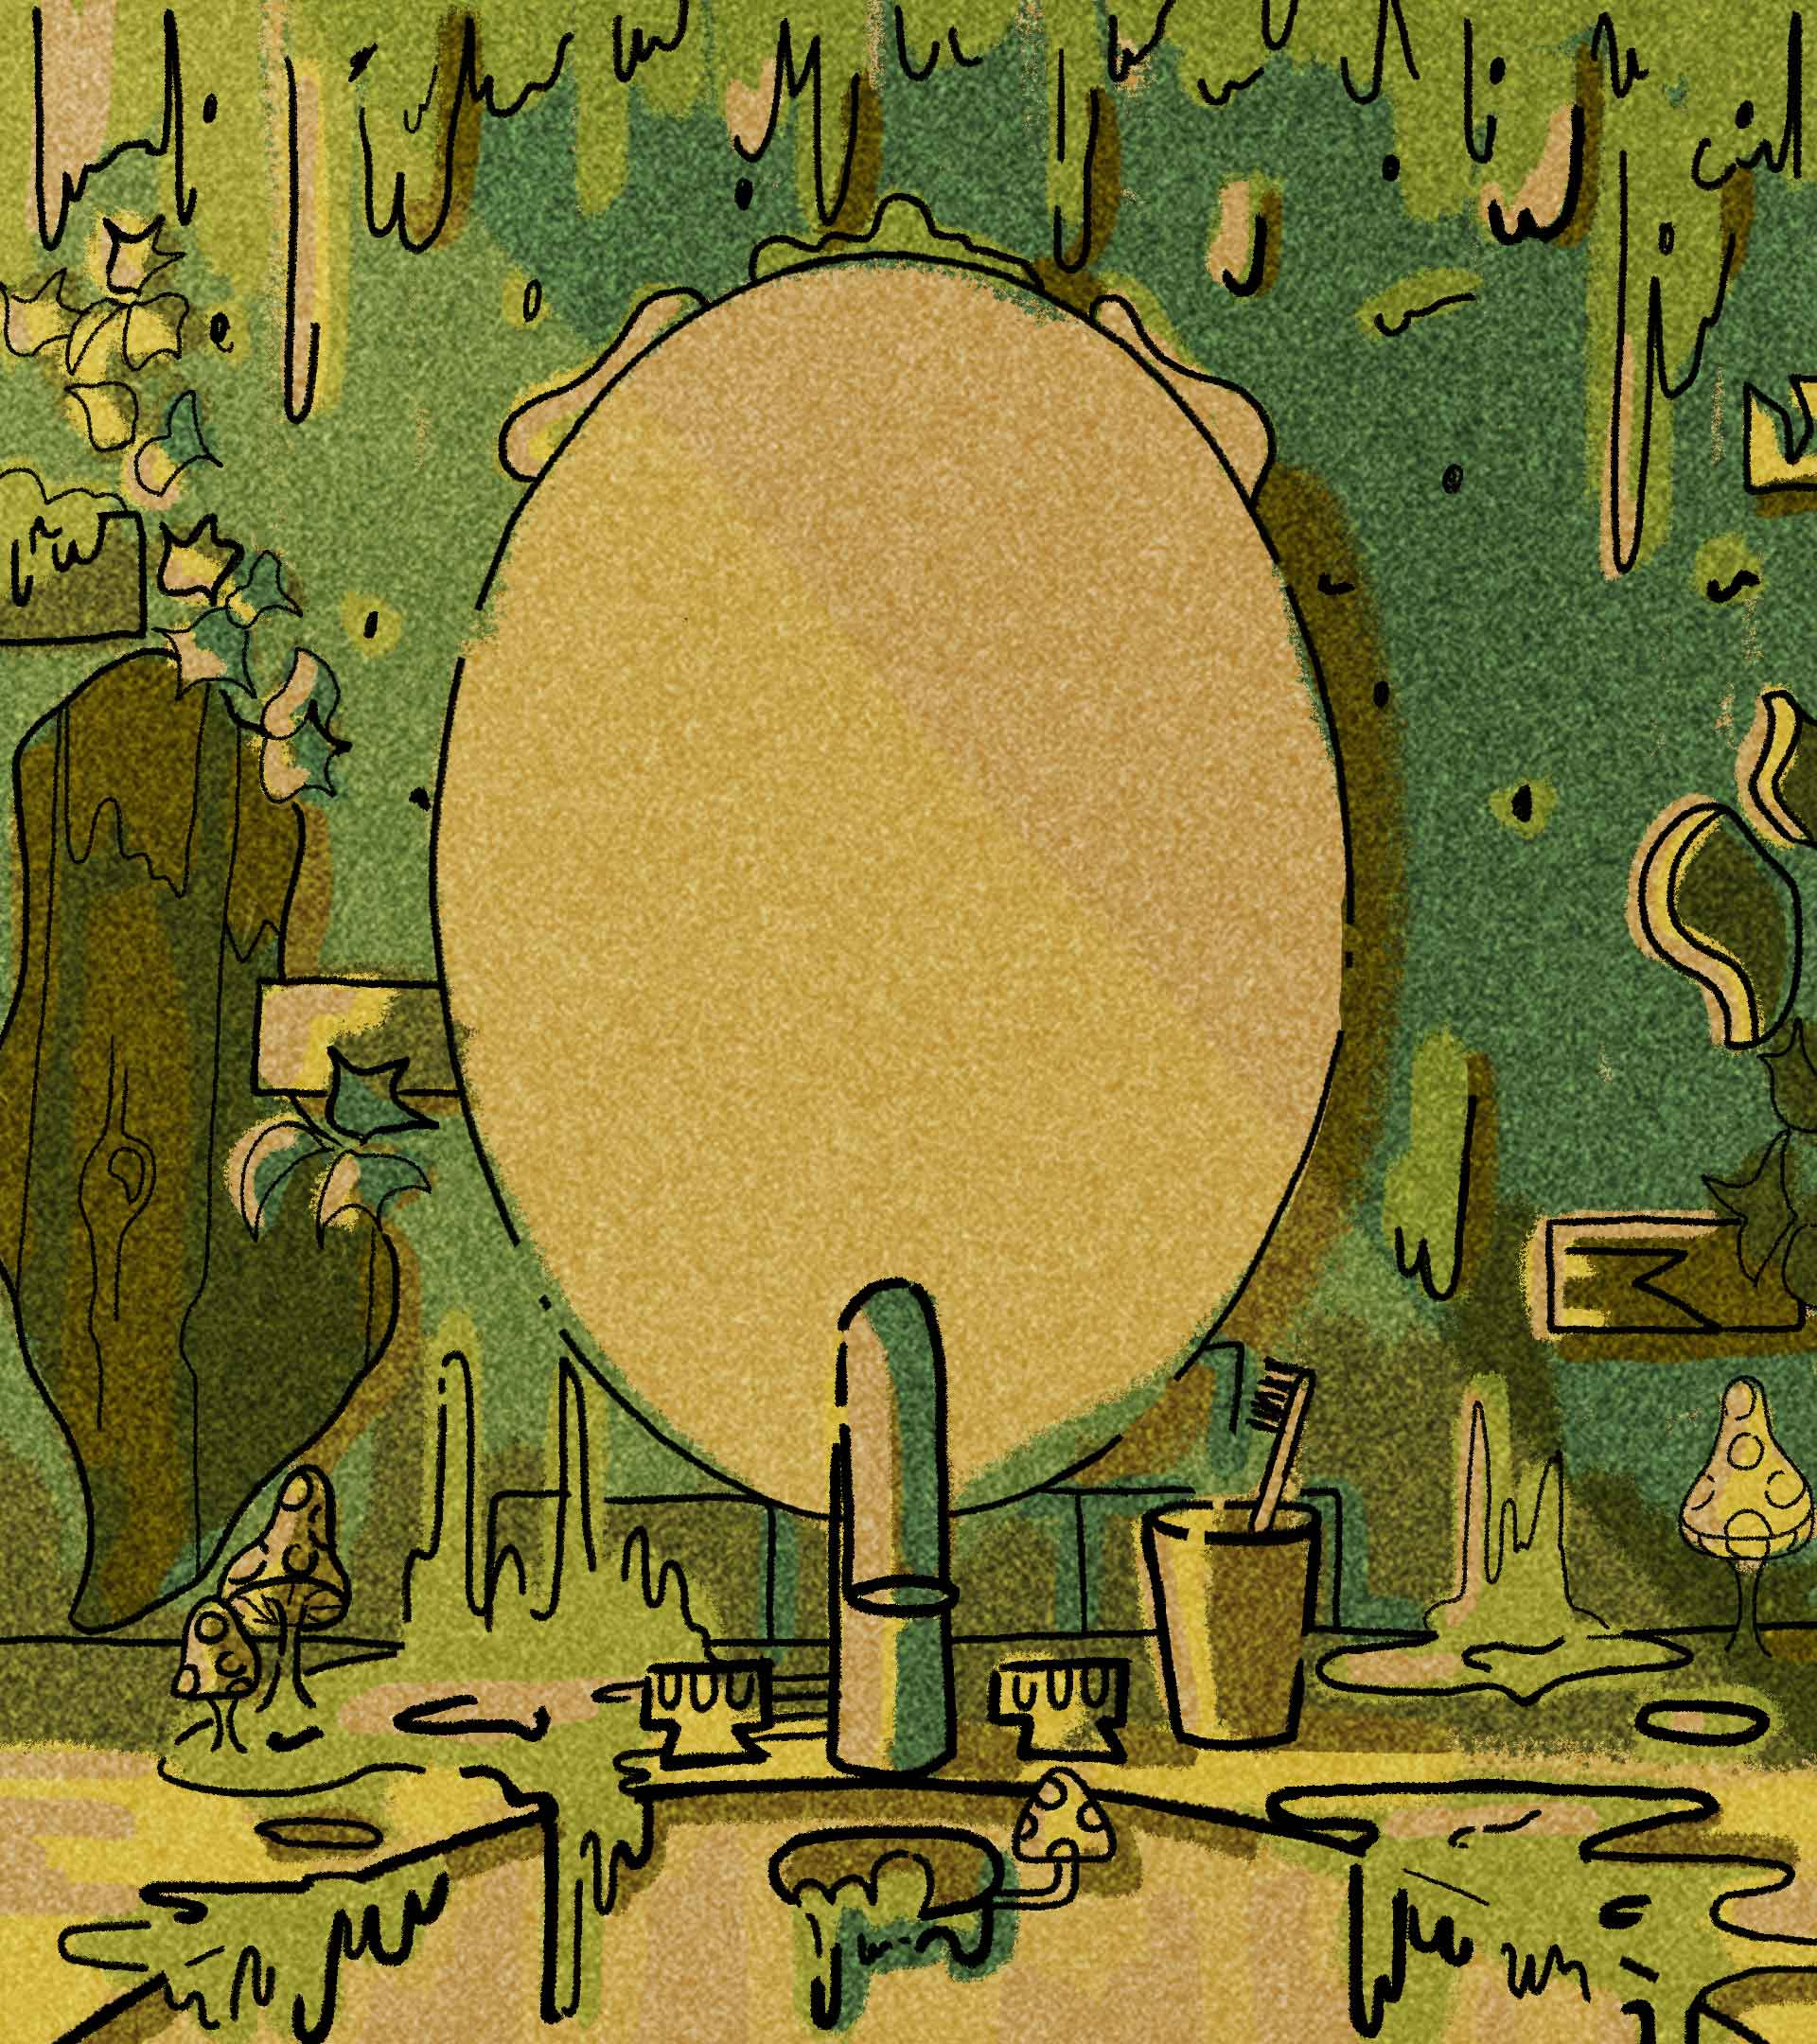 Illustration of mouldy green bathroom sink and mirror